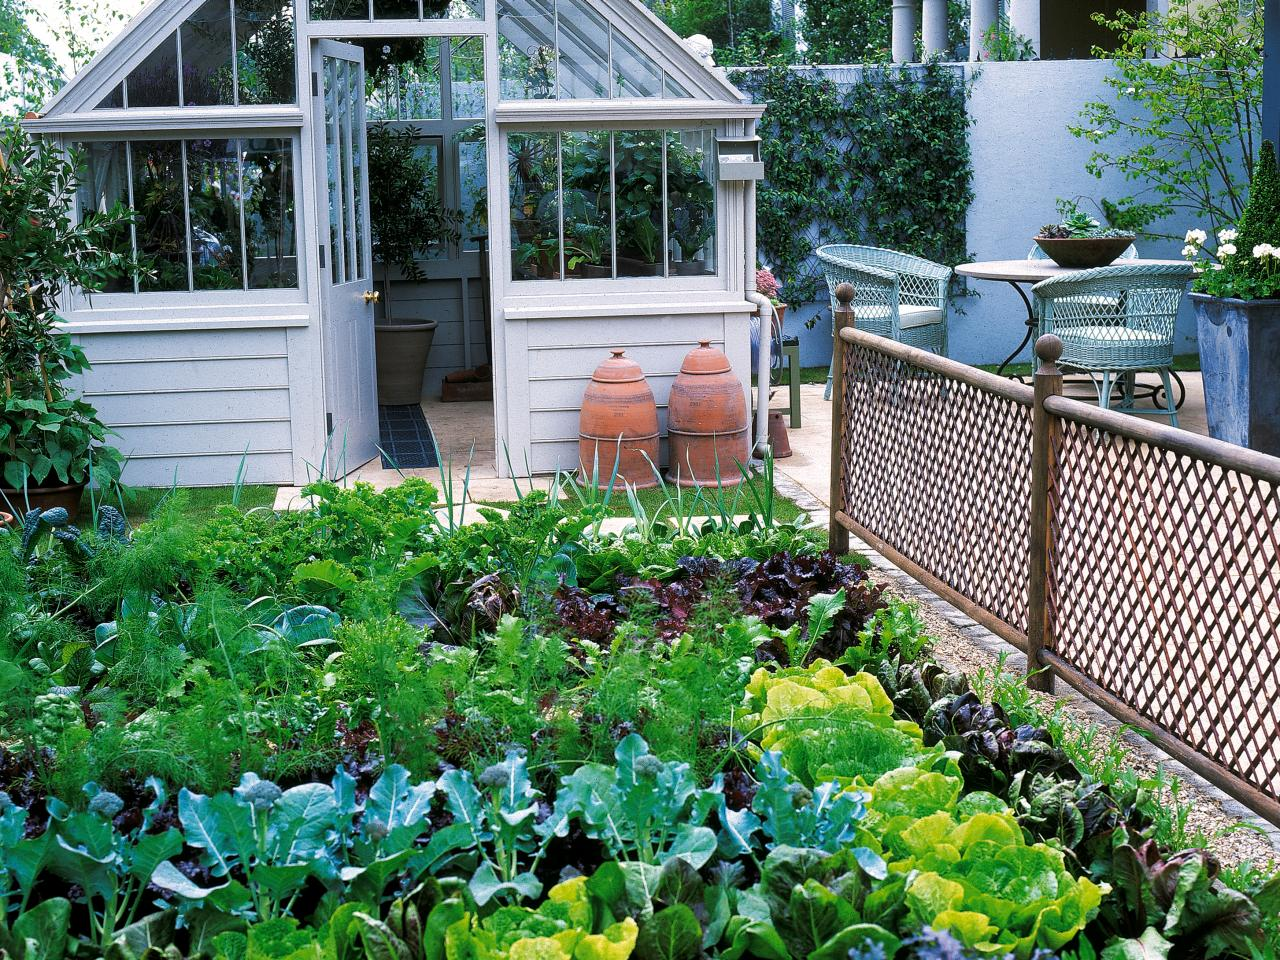 Growing your own vs shopping growing spaces for Idea of kitchen garden